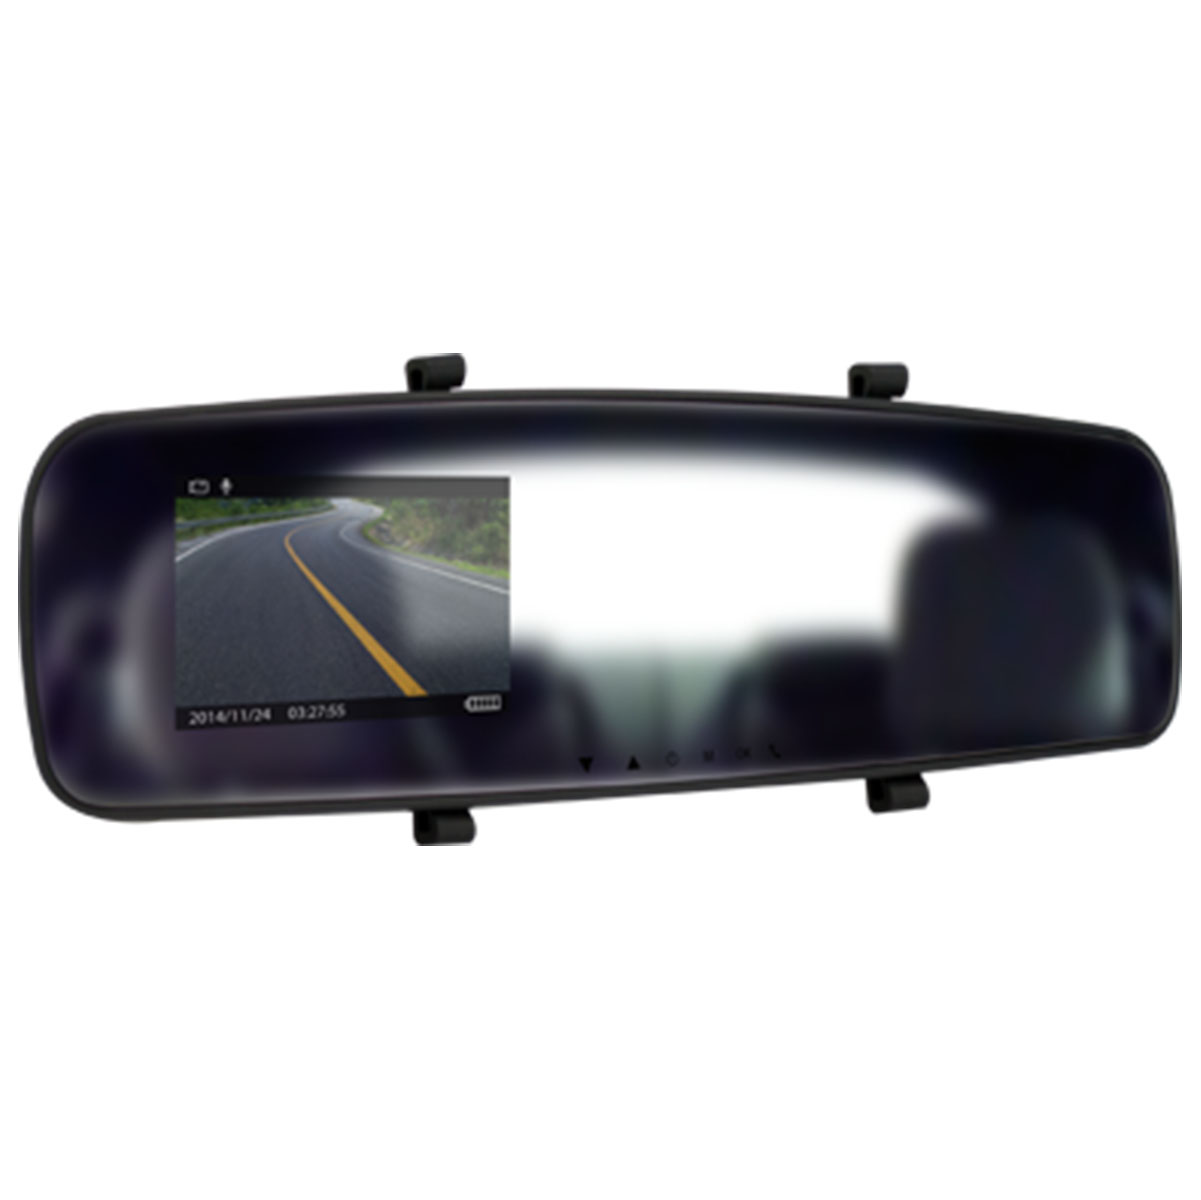 Car DVR Rear Mirror, 720p/1080p, Car DVR, 5Mp, TFT Panel, AVI,